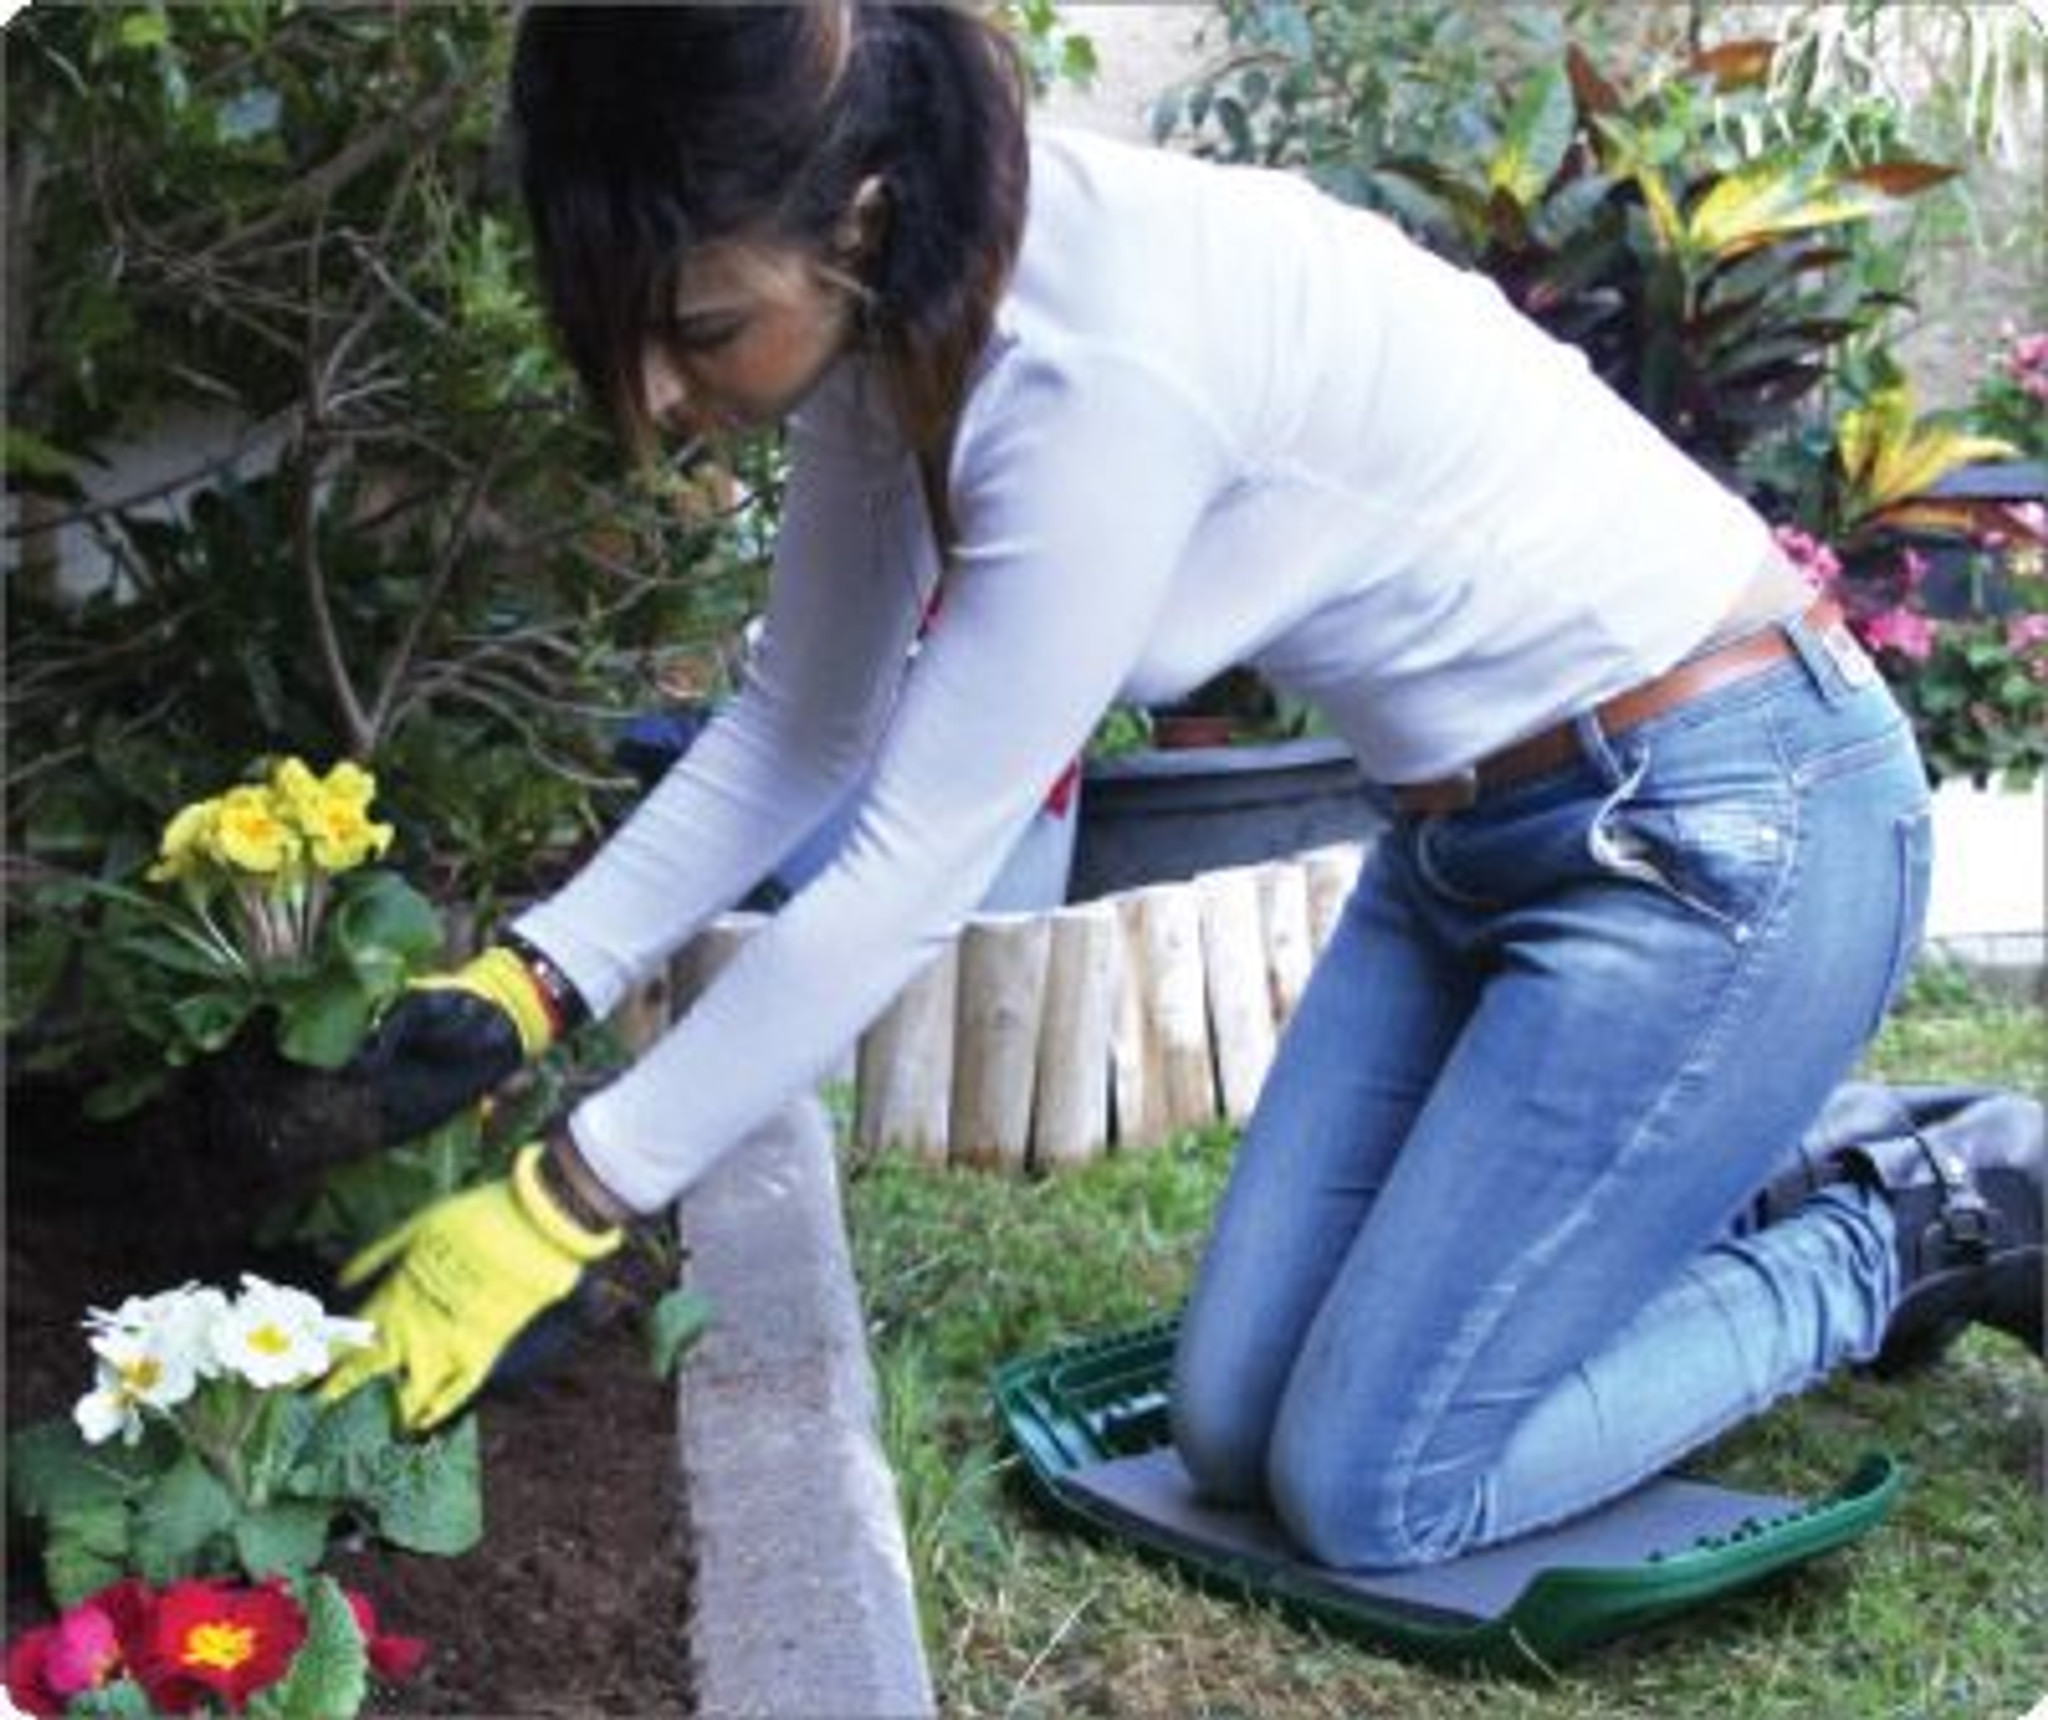 Seat N Roll 3 In 1 Gardening Seat With Wheels A Kneeler